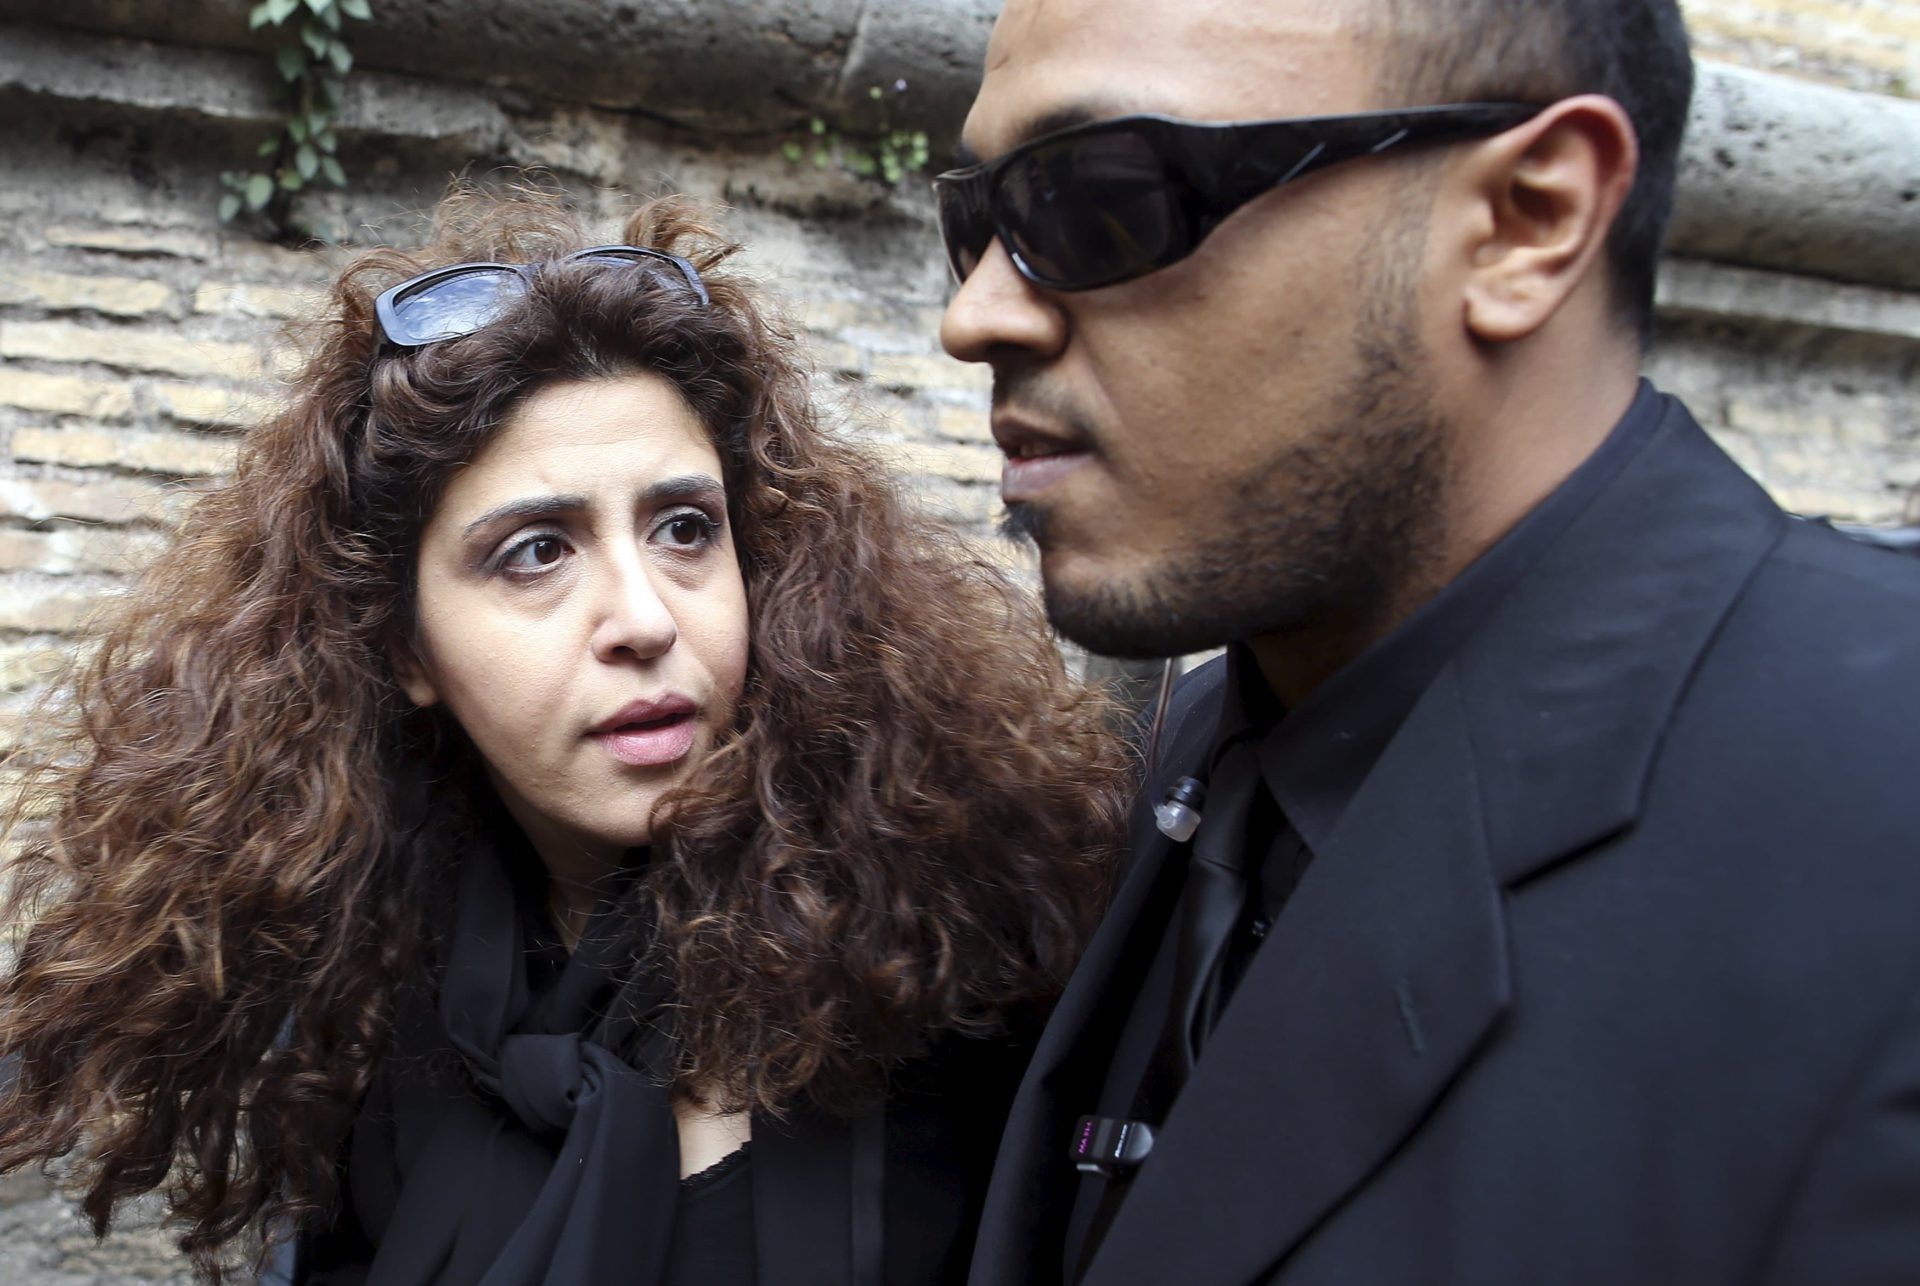 Italian laywoman Francesca Chaouqui arrives for the Vatileaks trial at the Vatican on 14 March. Chaouqui is one of five people on trial for leaking confidential Vatican documents that were published in two books. Photo: CNS/Alessandro Bianchi, Reuters